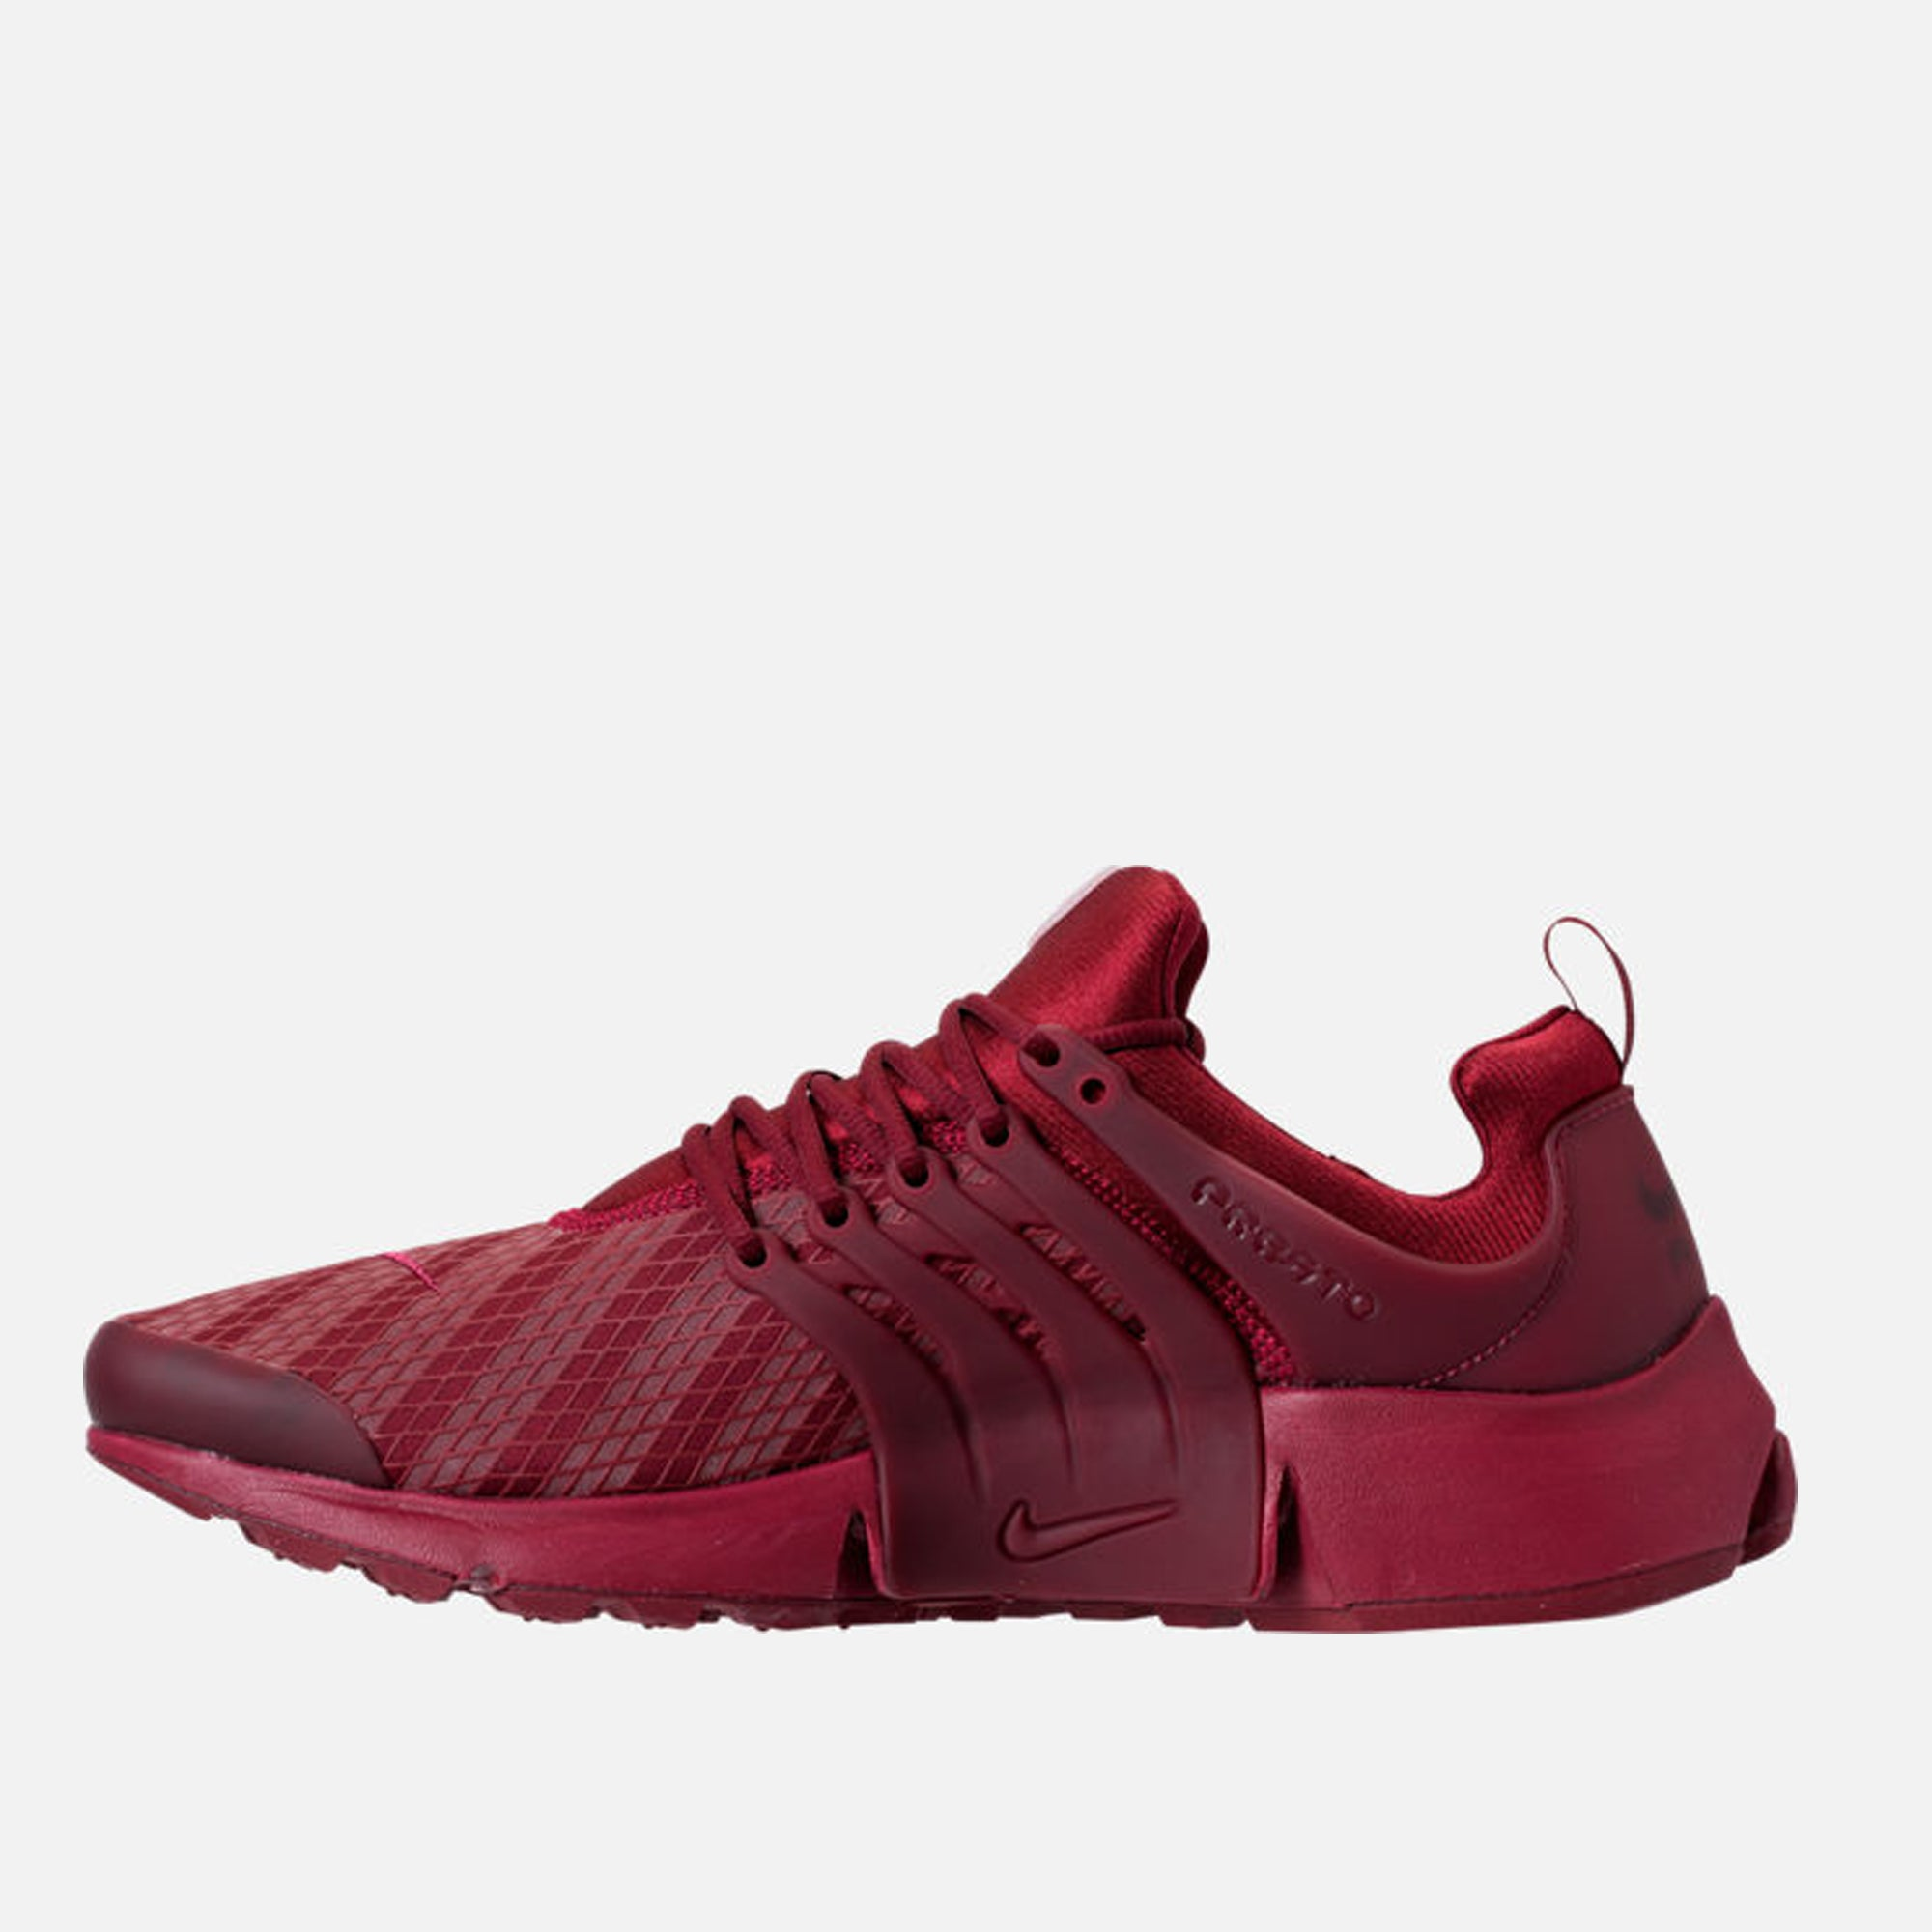 reputable site 1bd2b 56aad Men S Nike AIR Presto Low Utility Casual Shoes Team Red - PZOZO